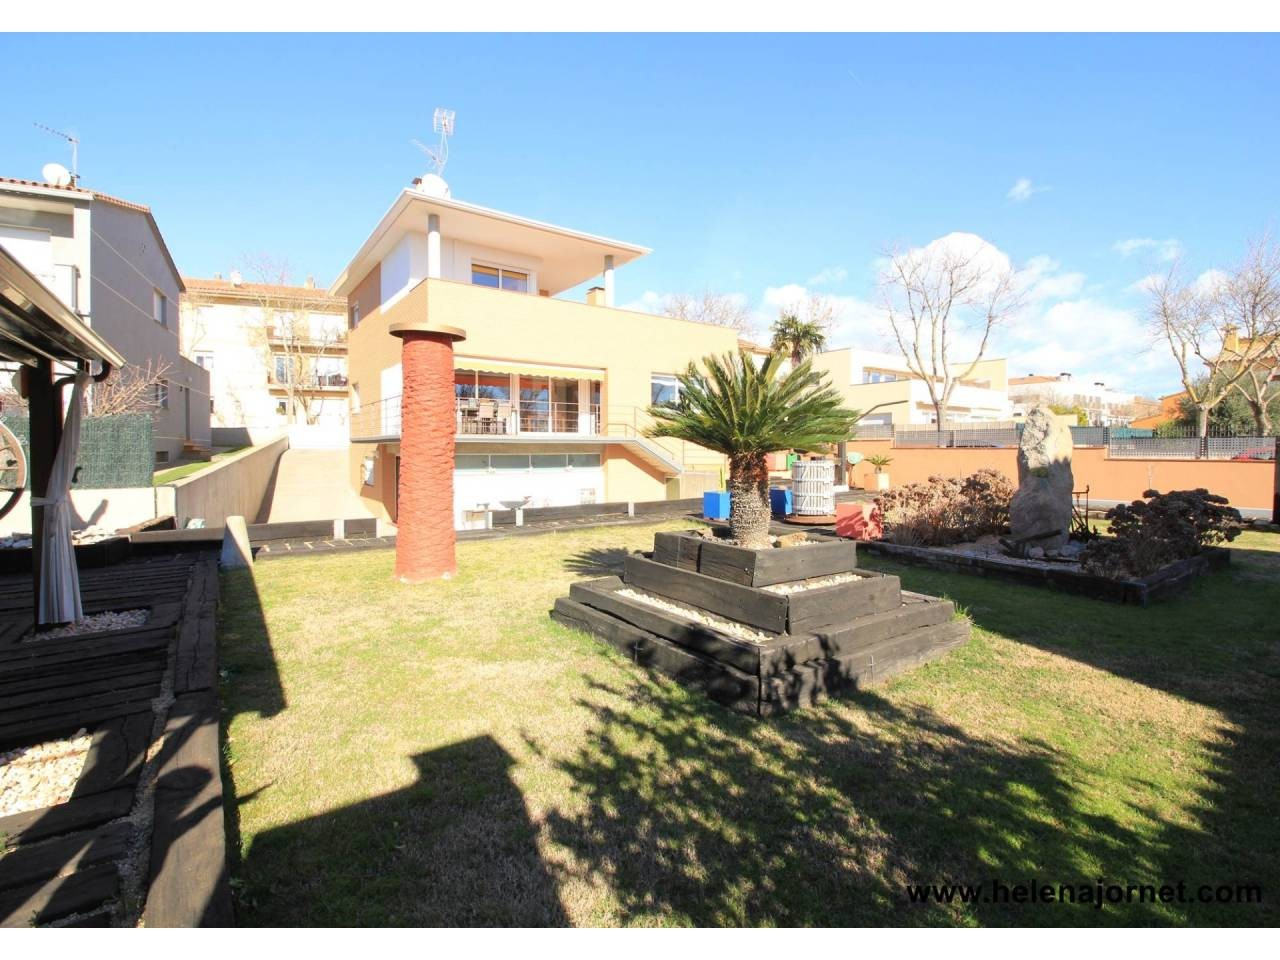 House with large garden and swimming pool in Castell d´Aro - 001475